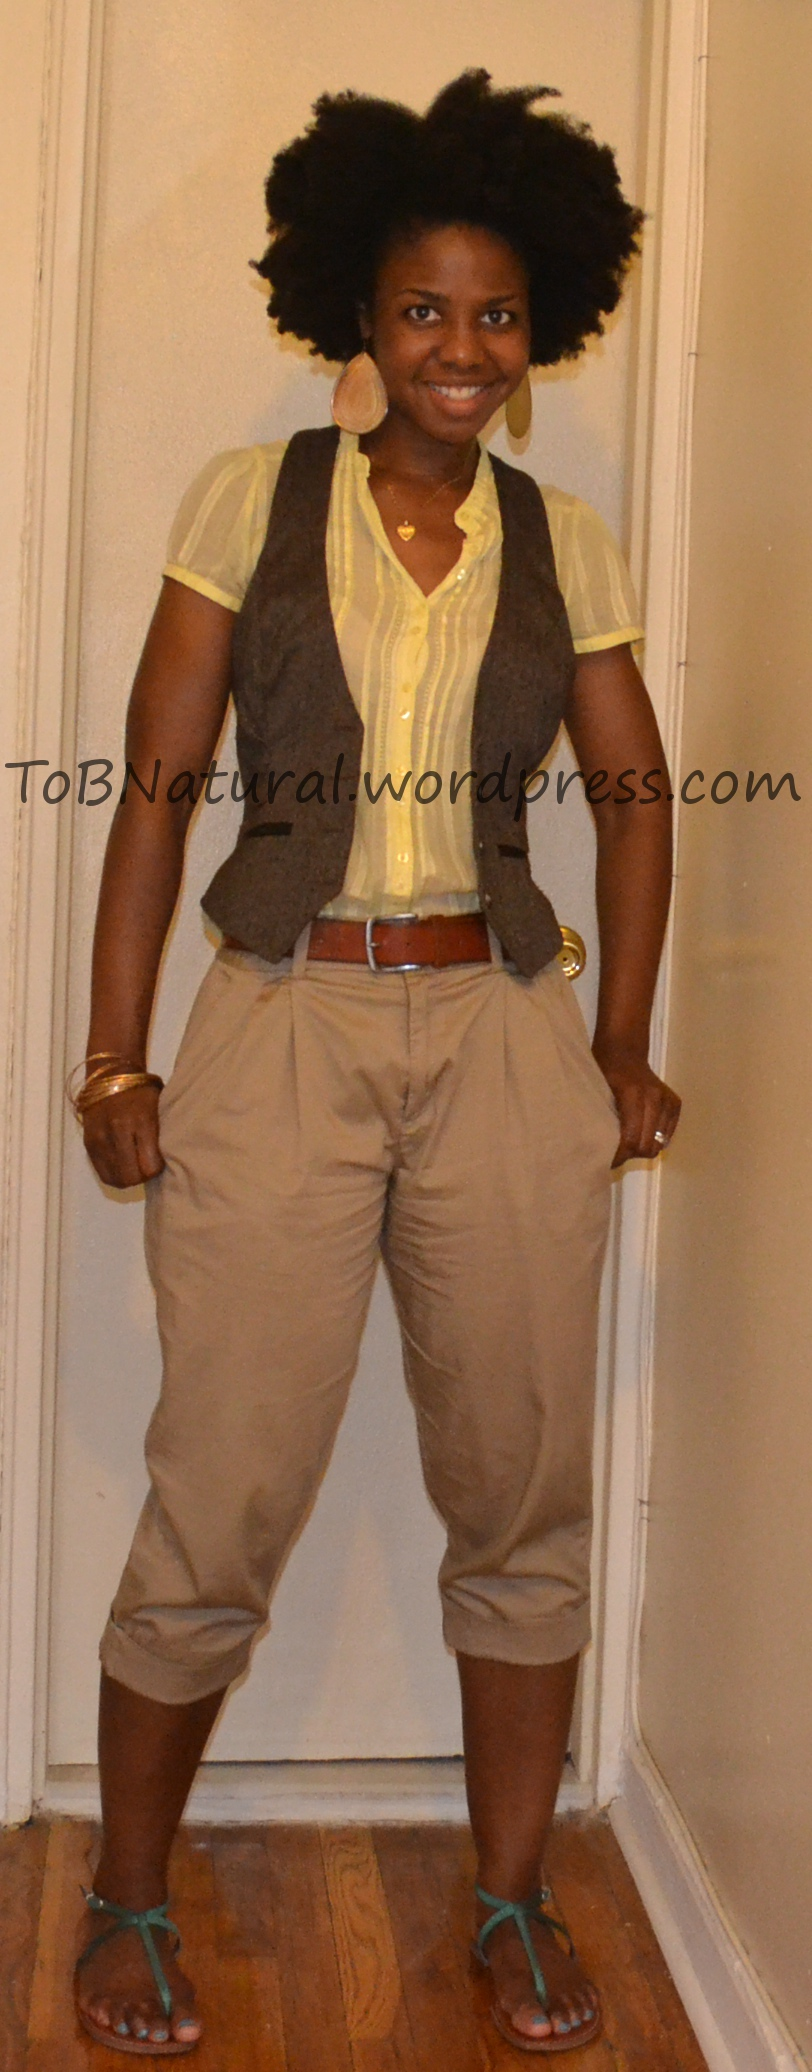 Inspiration... Execution! A StylePantry Summer Look - ToBNatural